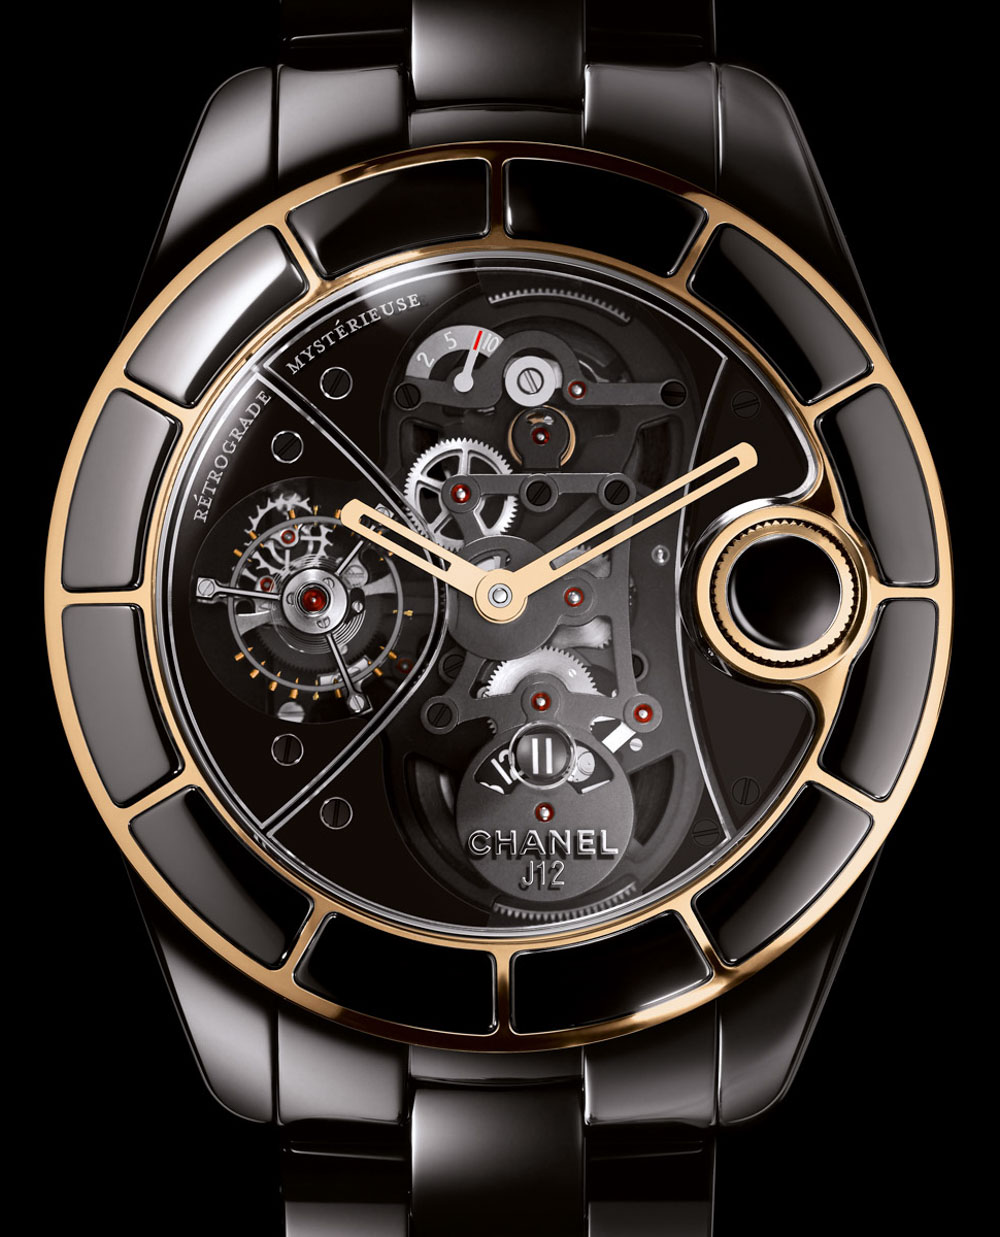 Chanel-J12-Retrograde-Mysterieuse-Tourbillon-Watch-15